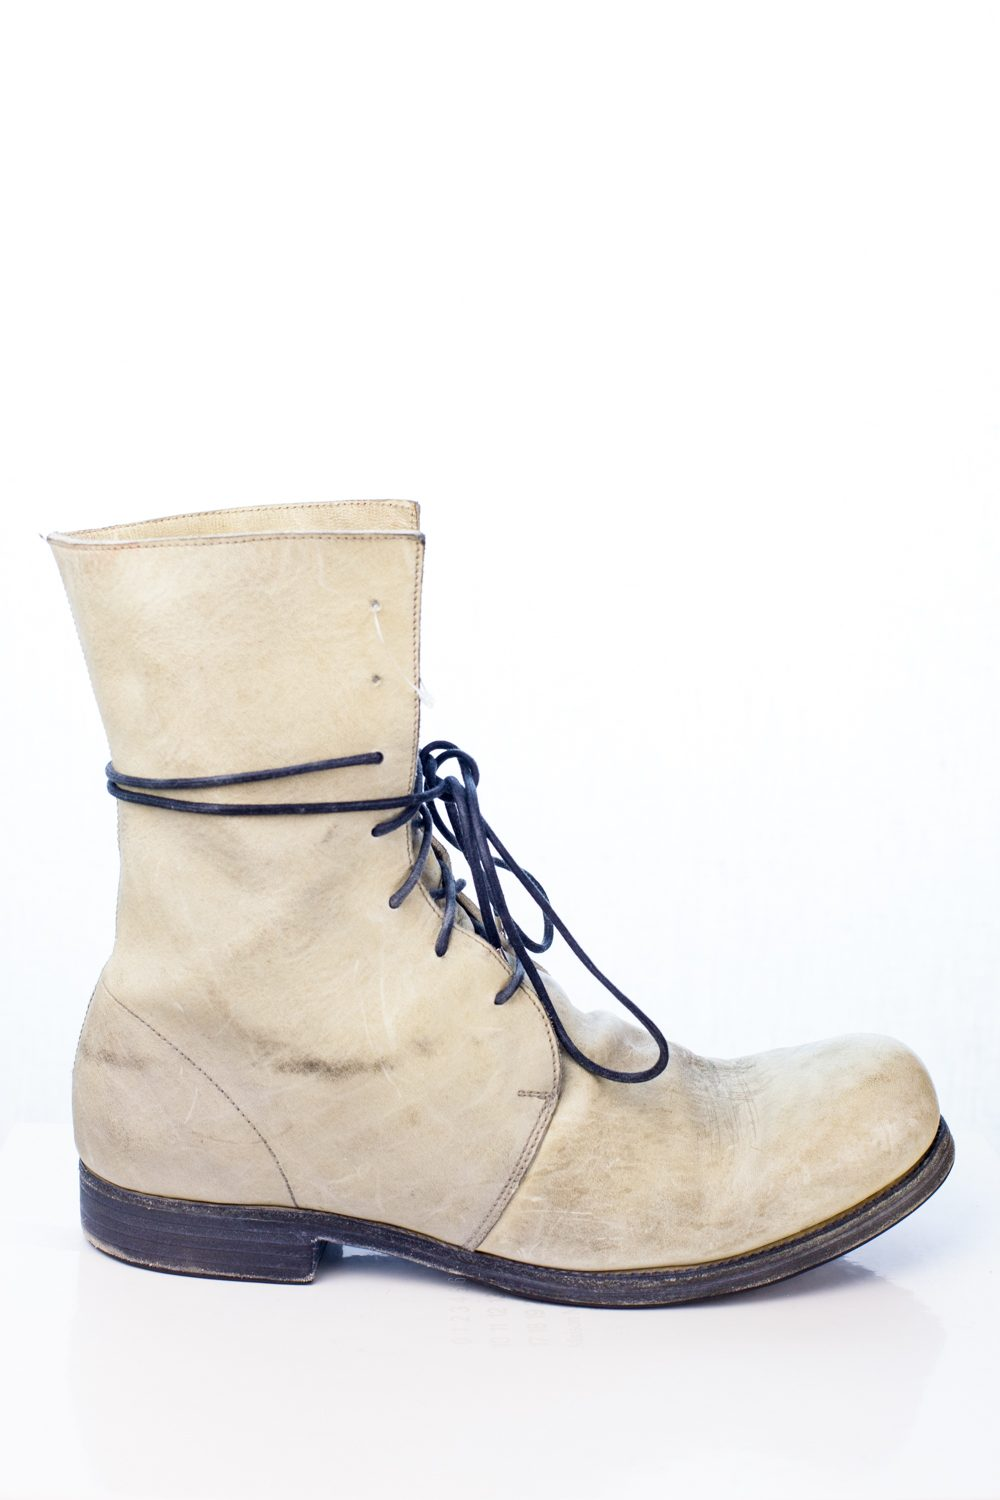 A1923 Horse Leather 7-hole boot